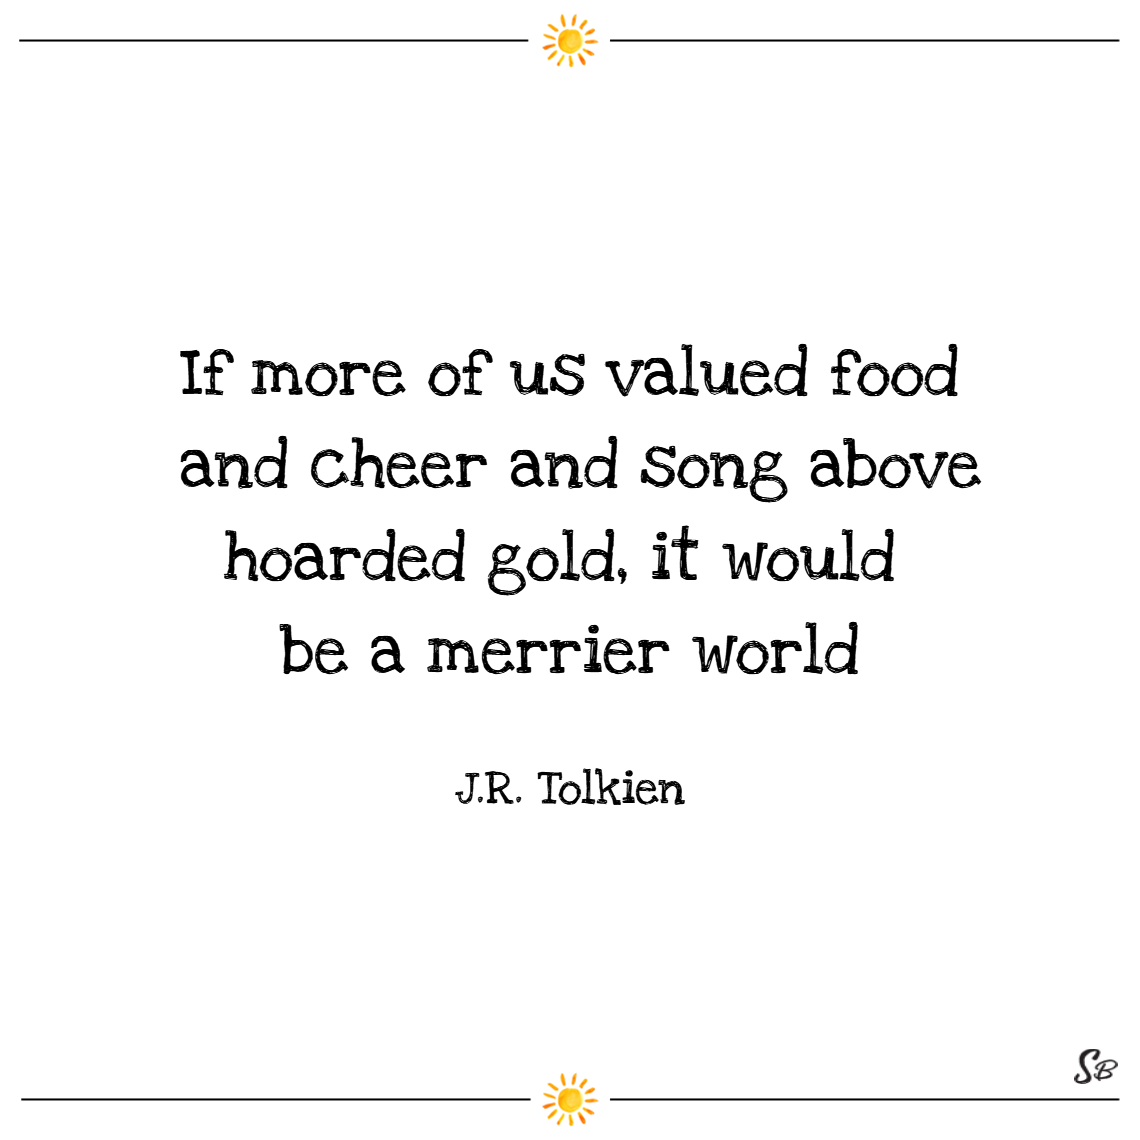 If more of us valued food and cheer and song above hoarded gold, it would be a merrier world. – j. r. r. tolkien